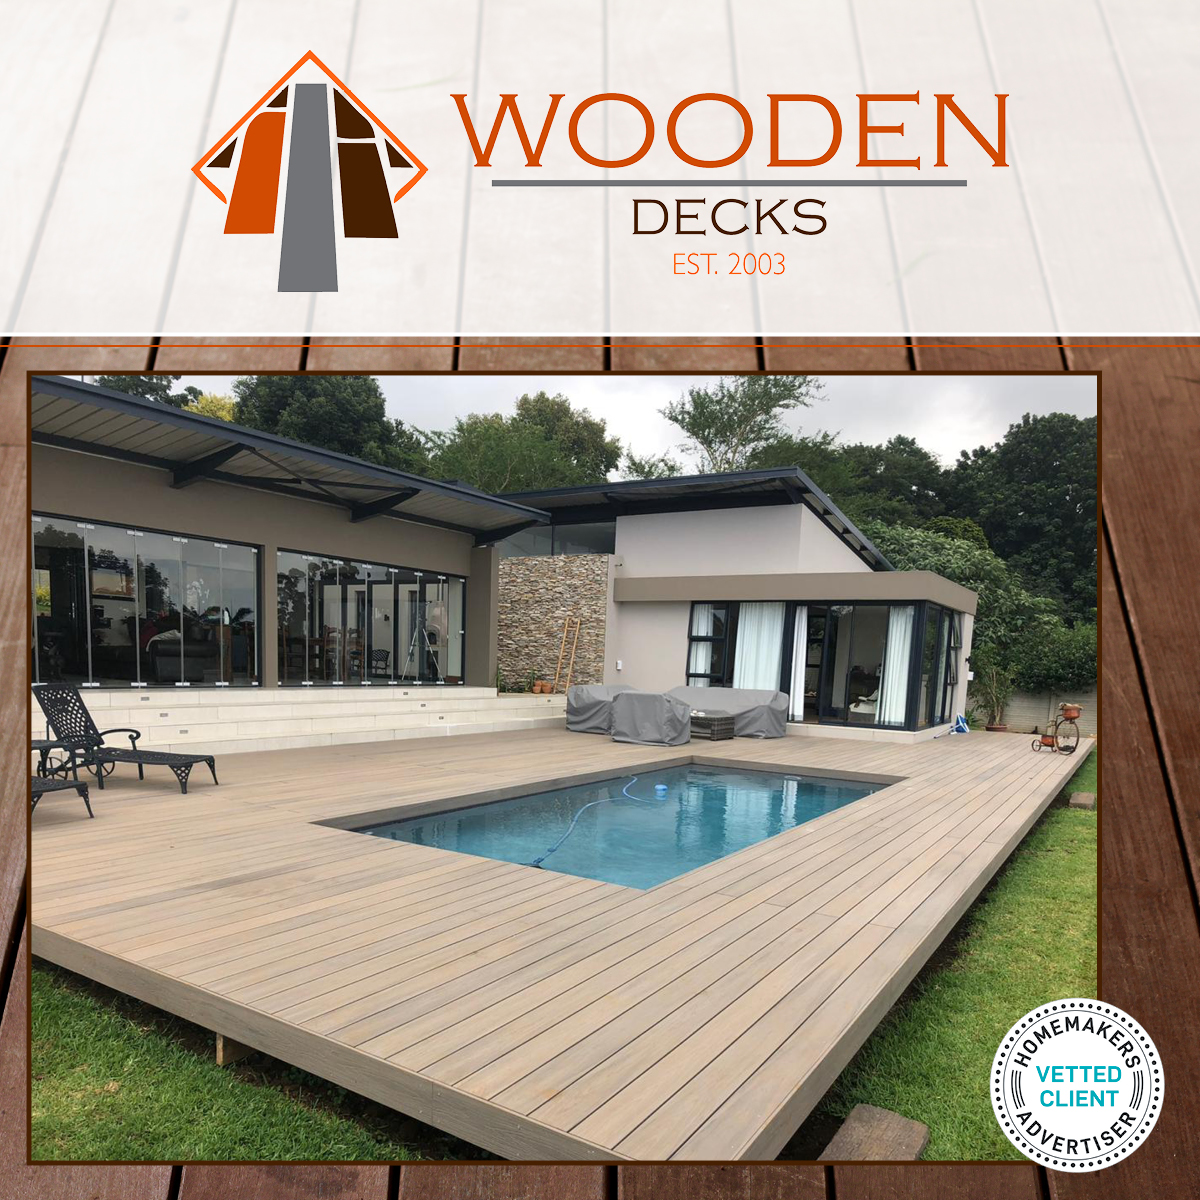 Installation of solid timbers or composite decking, balustrade, staircases, mezzanine floors and outdoor table & bench sets. We also do decking refurbishment and resurfacing of old decks.